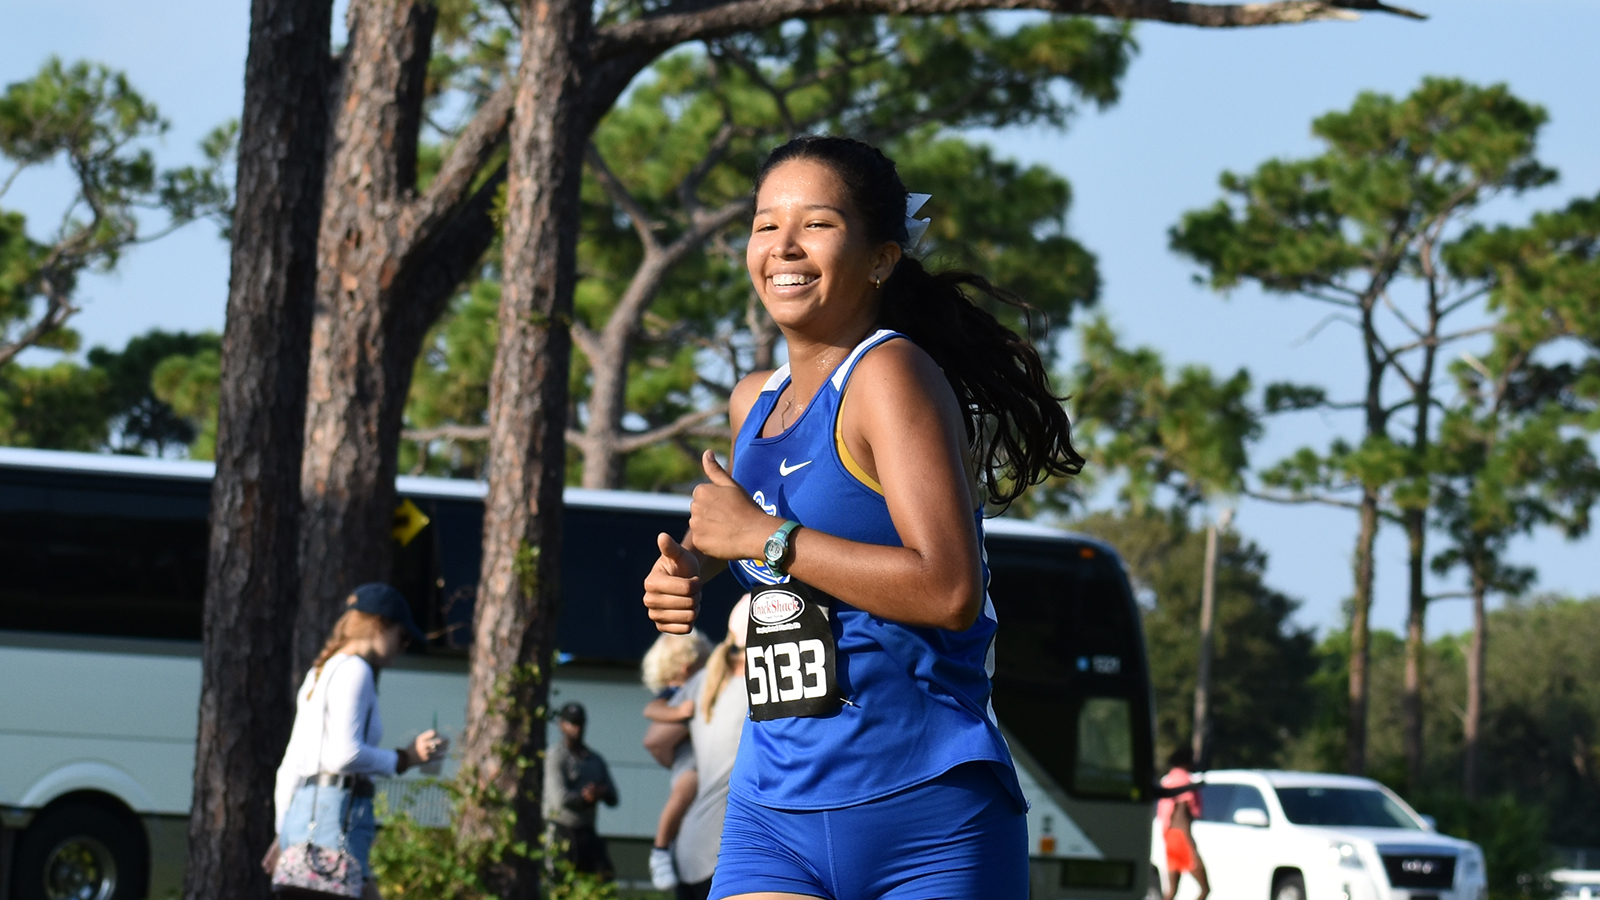 Rollins Closes the 2019 Cross Country Season